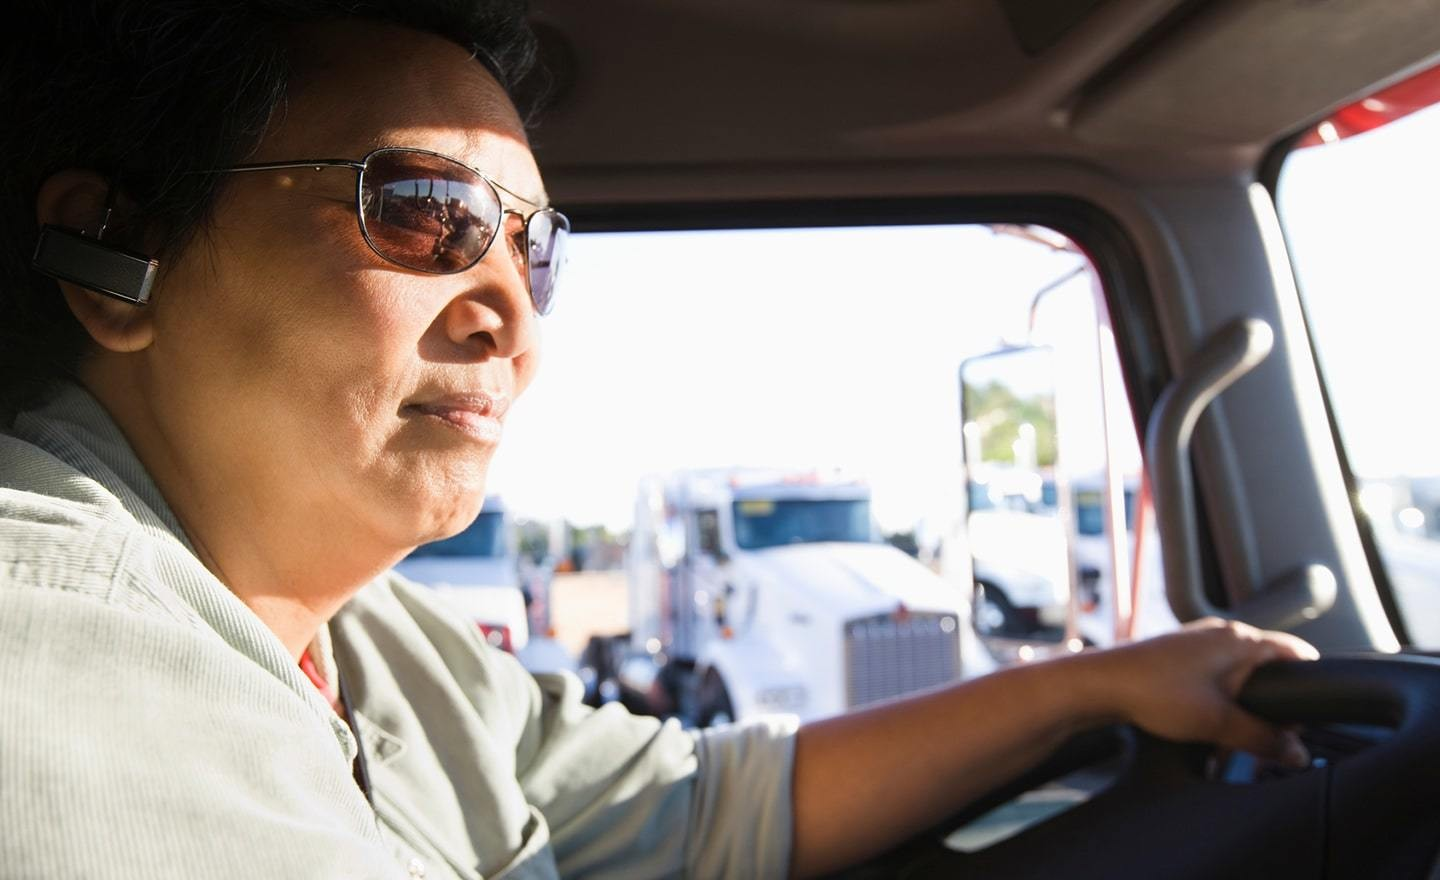 Truck driver seen in cab of truck